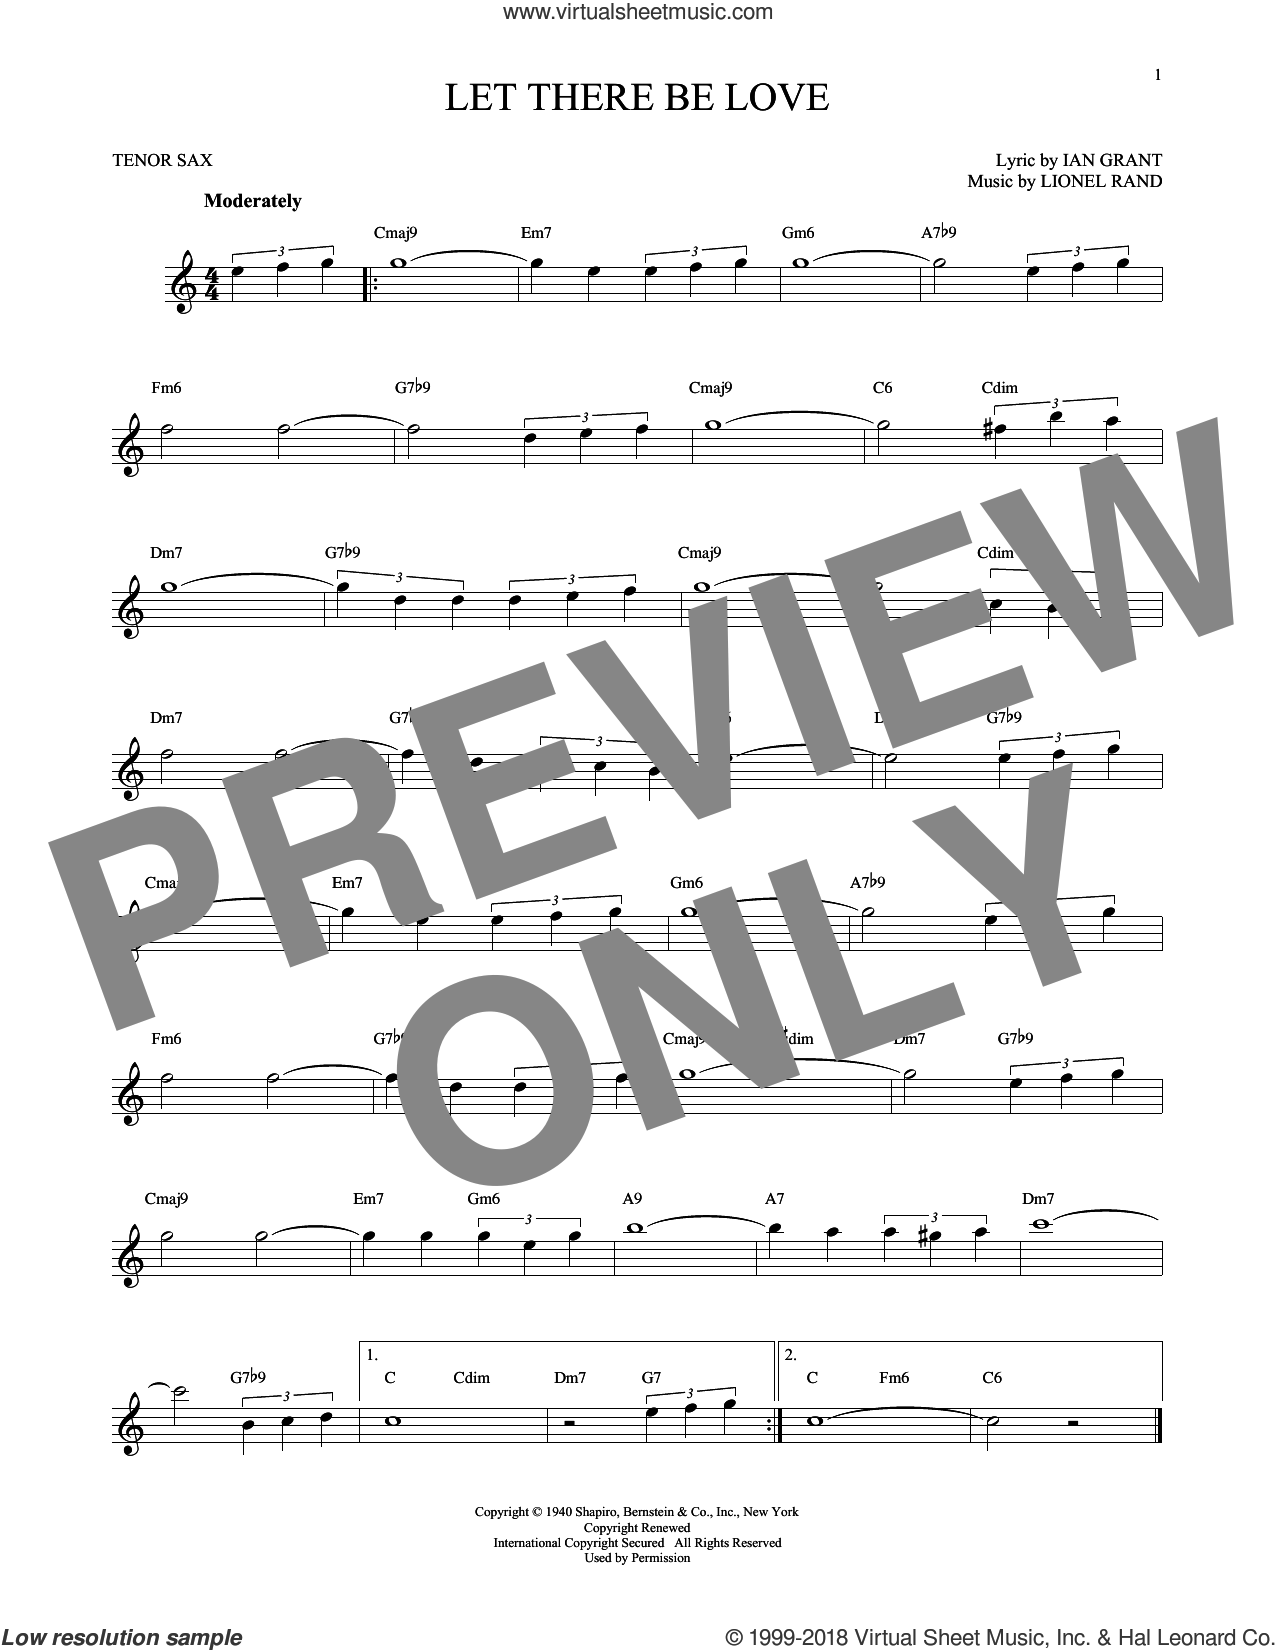 Let There Be Love sheet music for tenor saxophone solo by Ian Grant and Lionel Rand, intermediate skill level